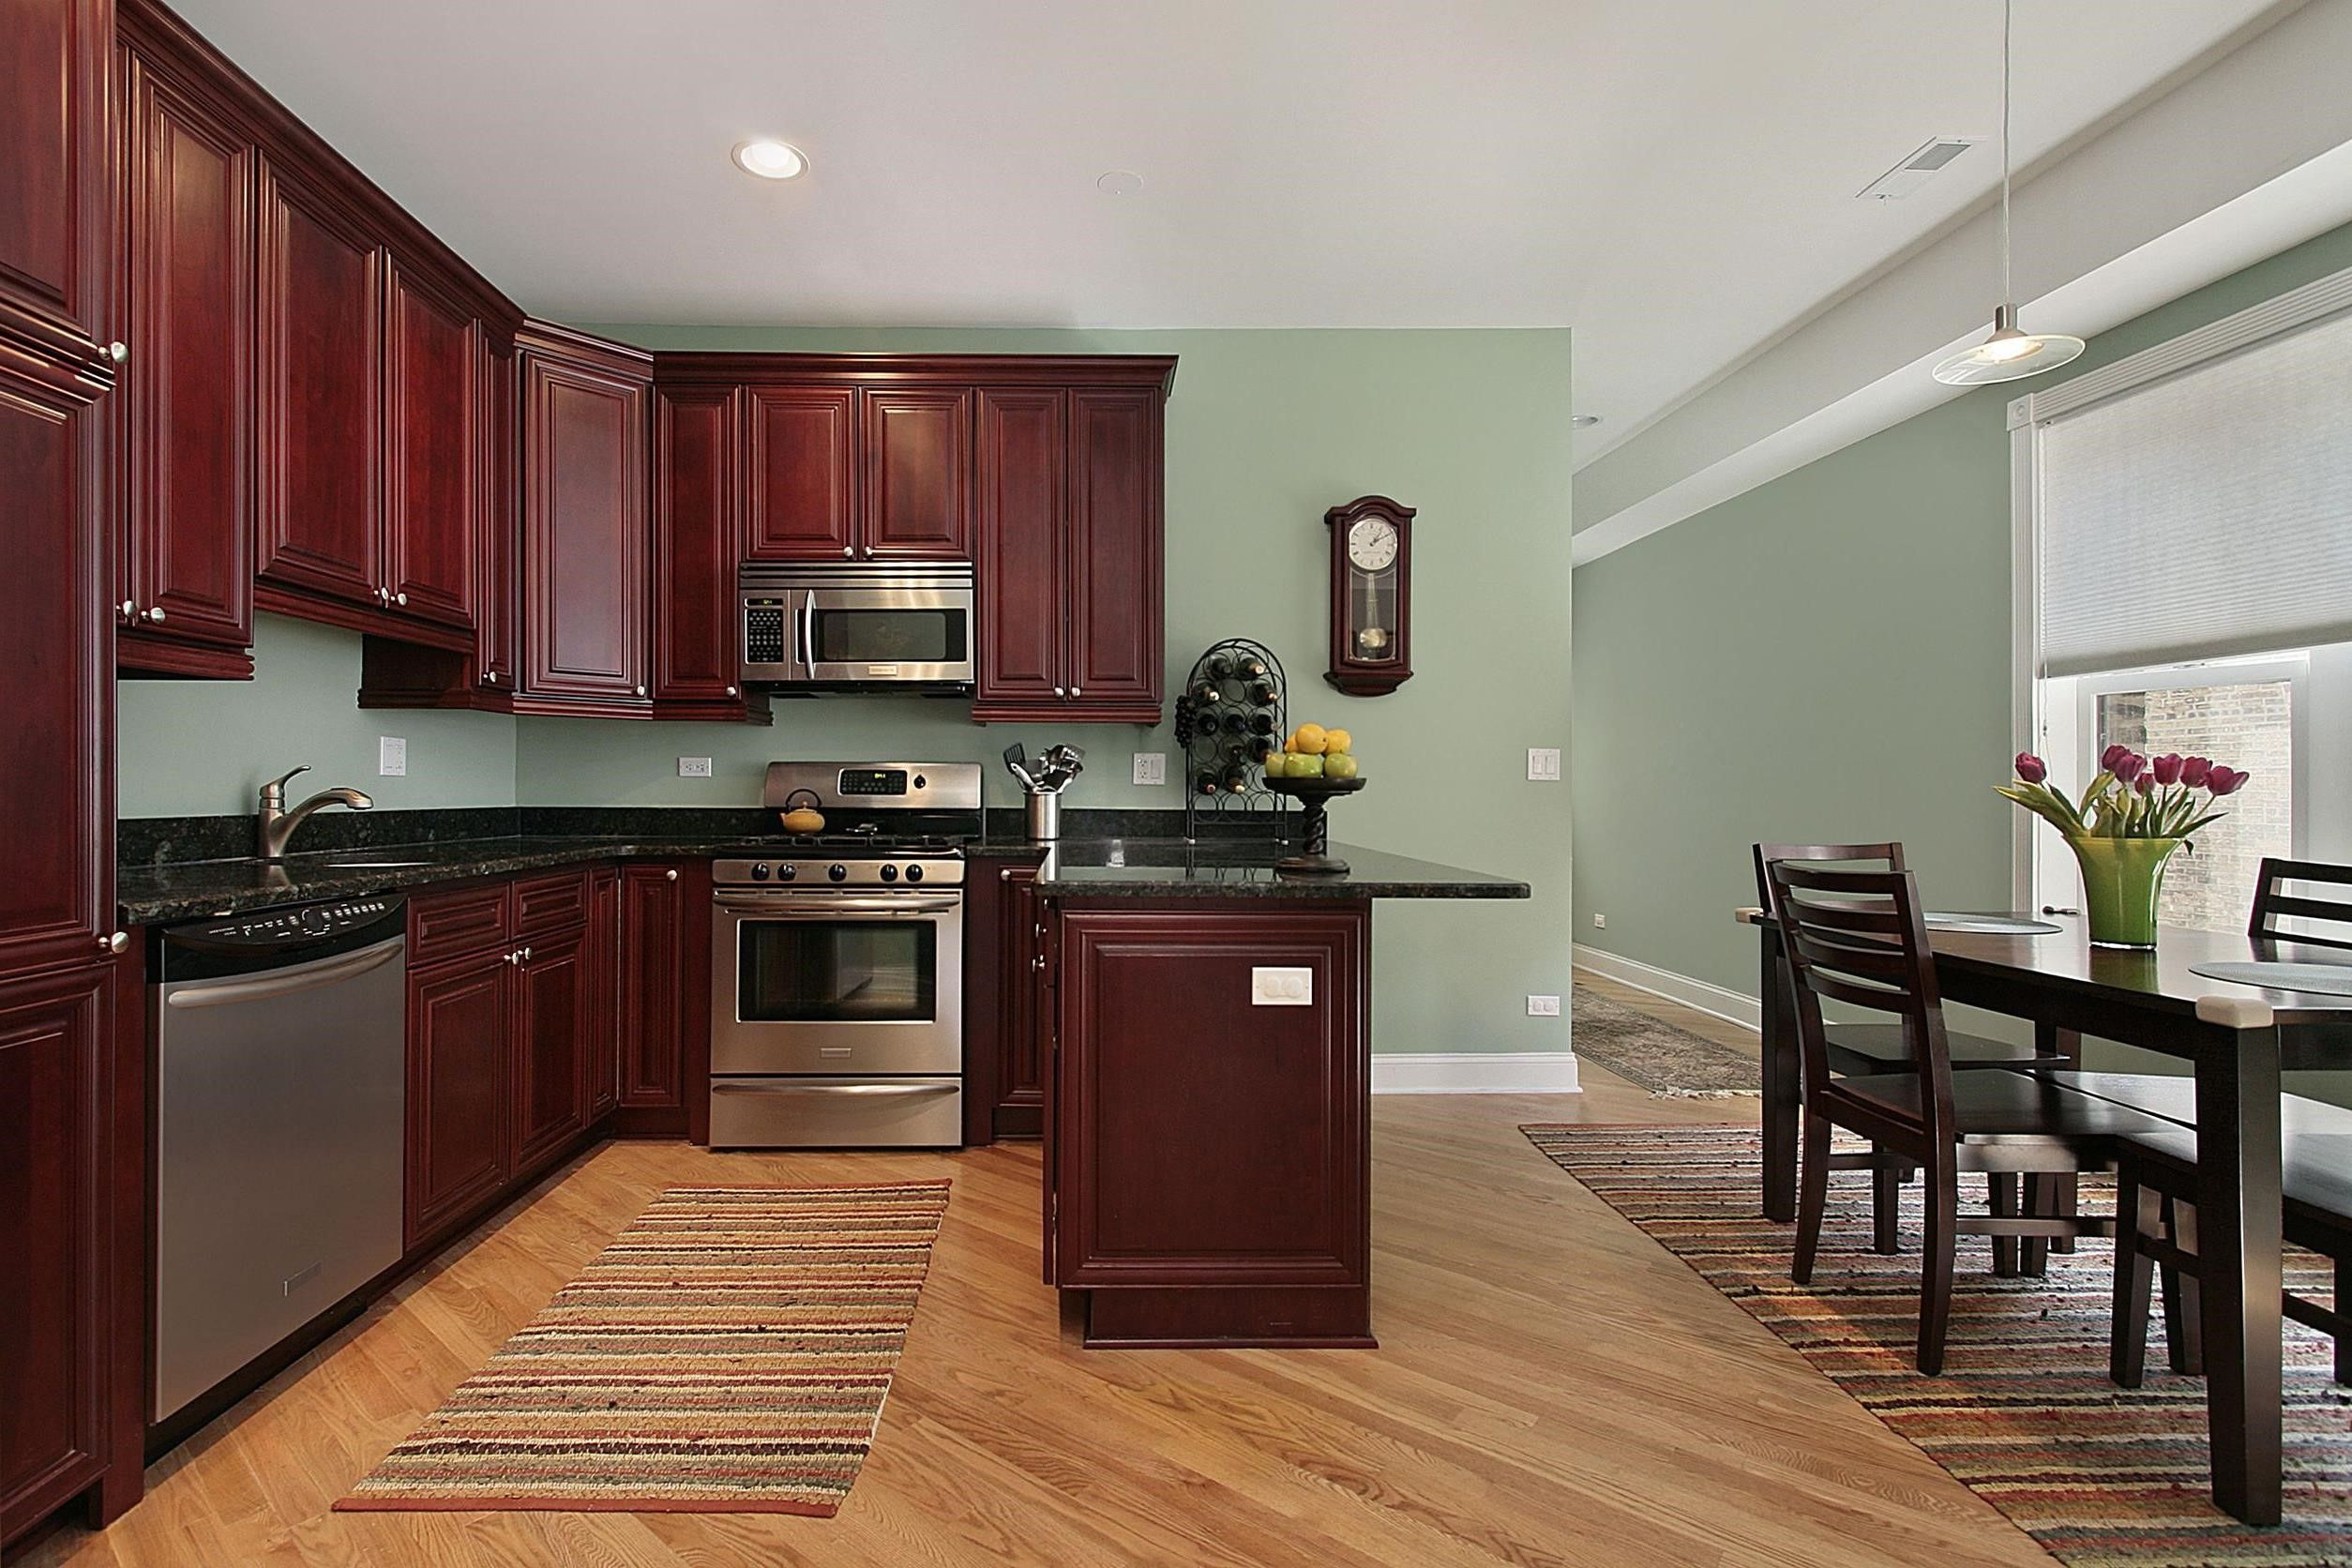 Light Sage Green Paint Colors In Kitchen With Dark ...